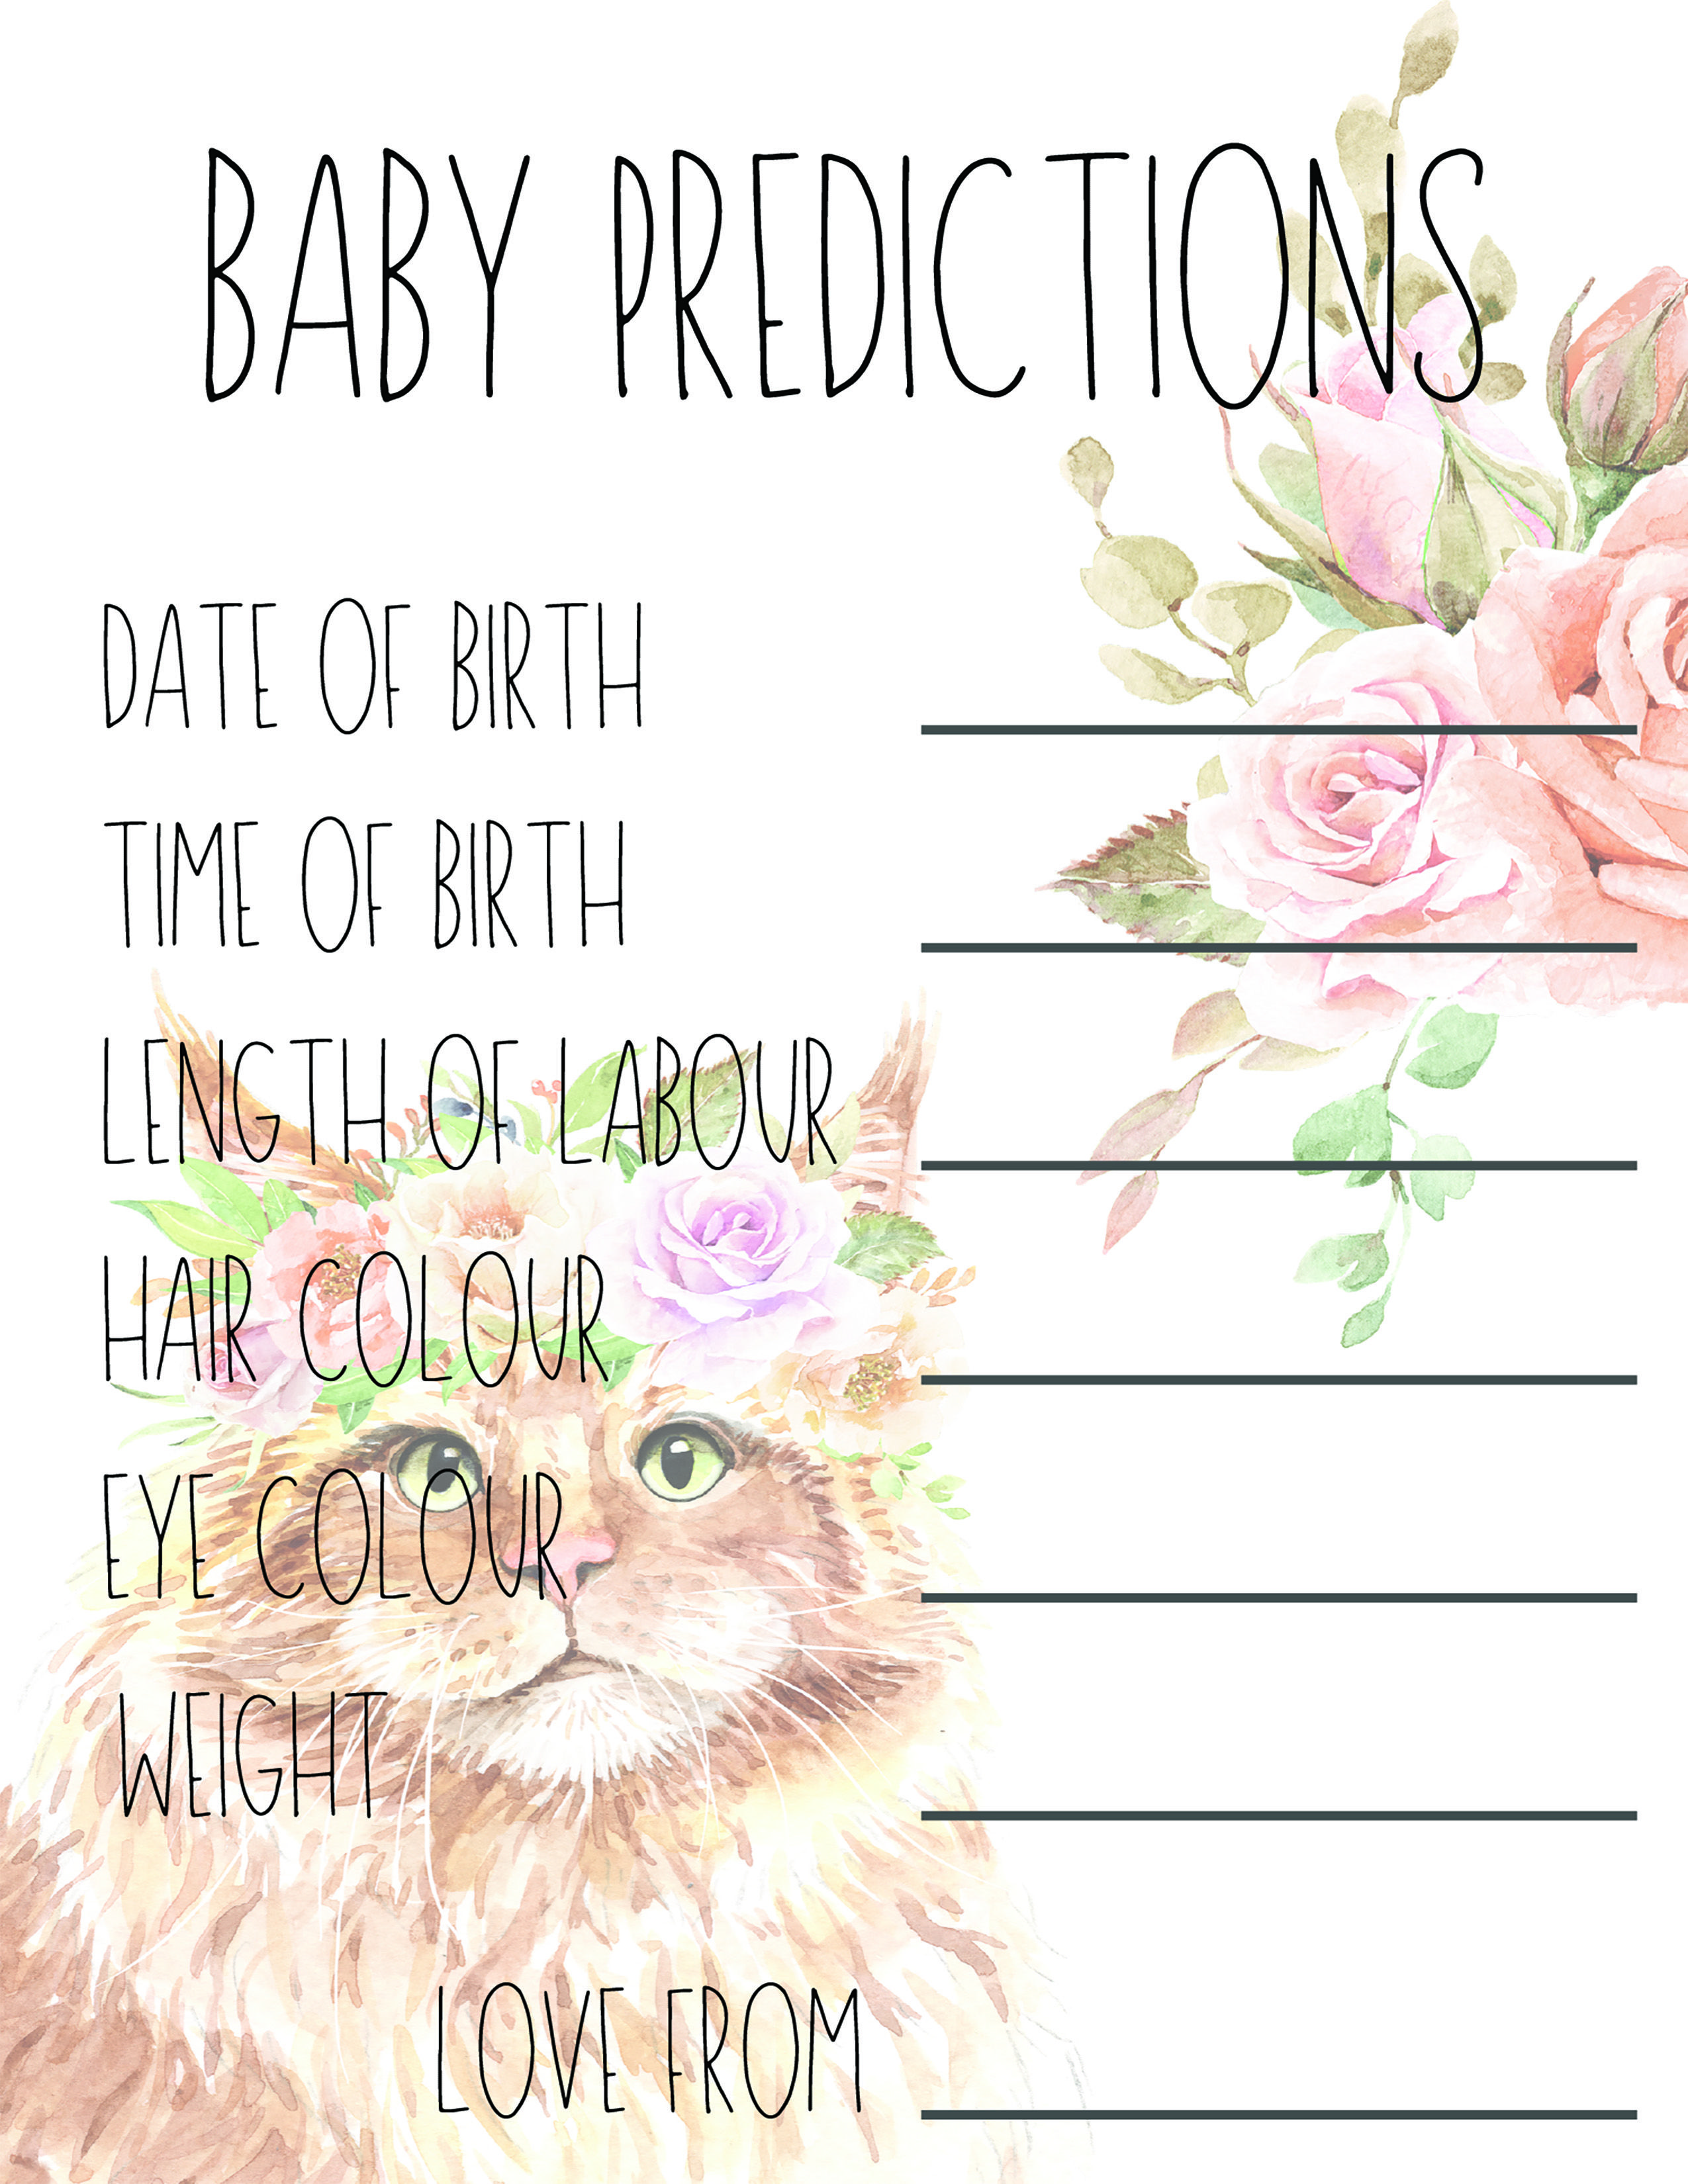 Baby Shower Games Cat Theme Baby Shower Game Printable Instant Download Baby Prediction Game Gender Reveal Cat Baby Suite In 2020 Baby Prediction Baby Shower Themes Baby Shower Games